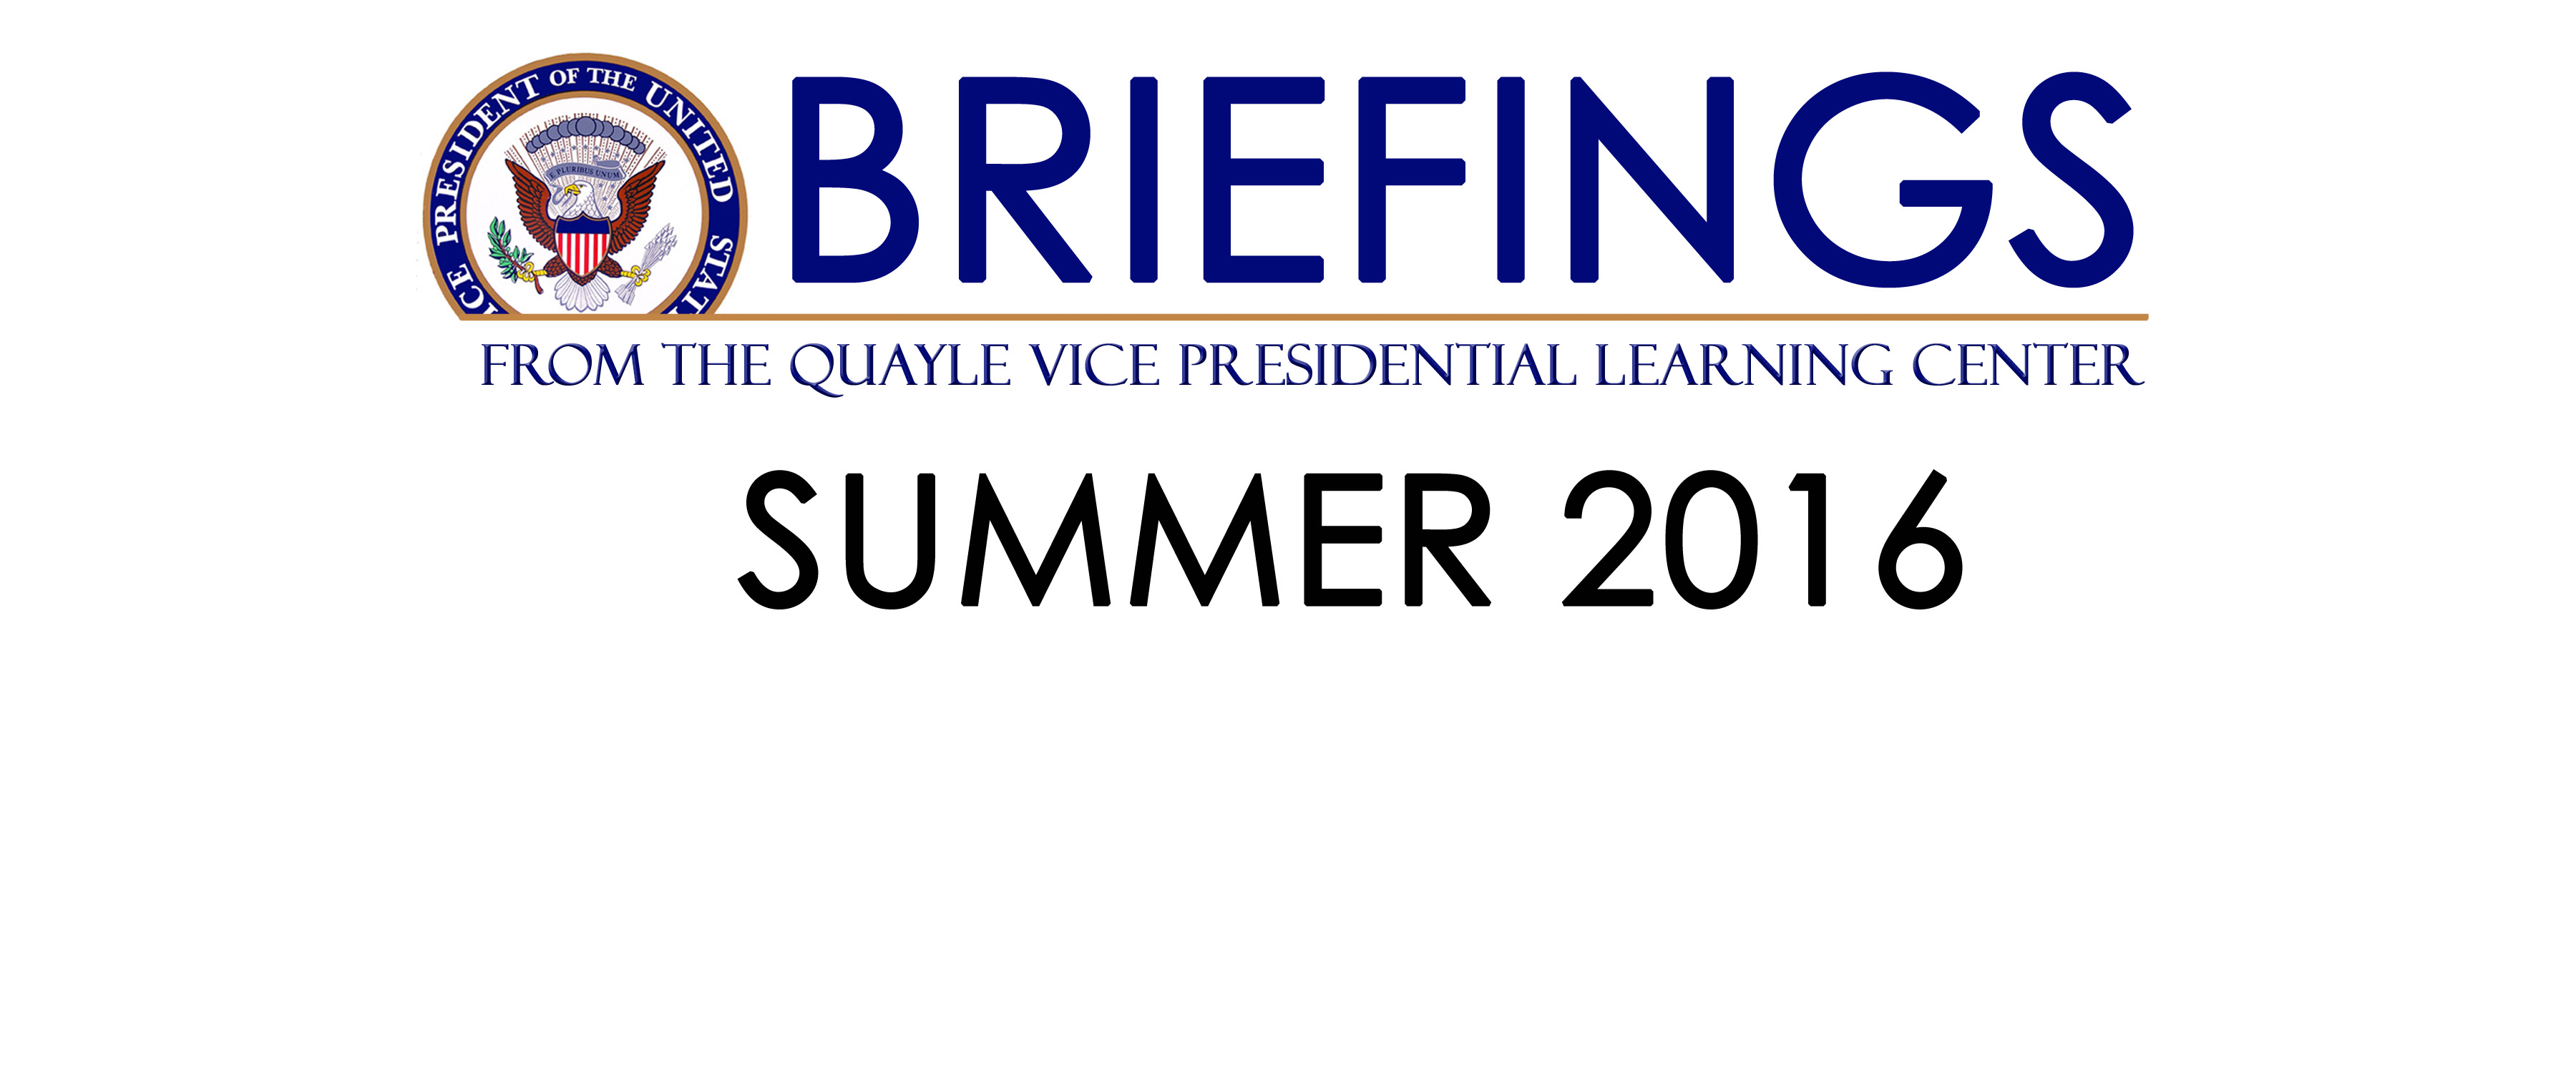 Briefings Graphic Summer 2016 2